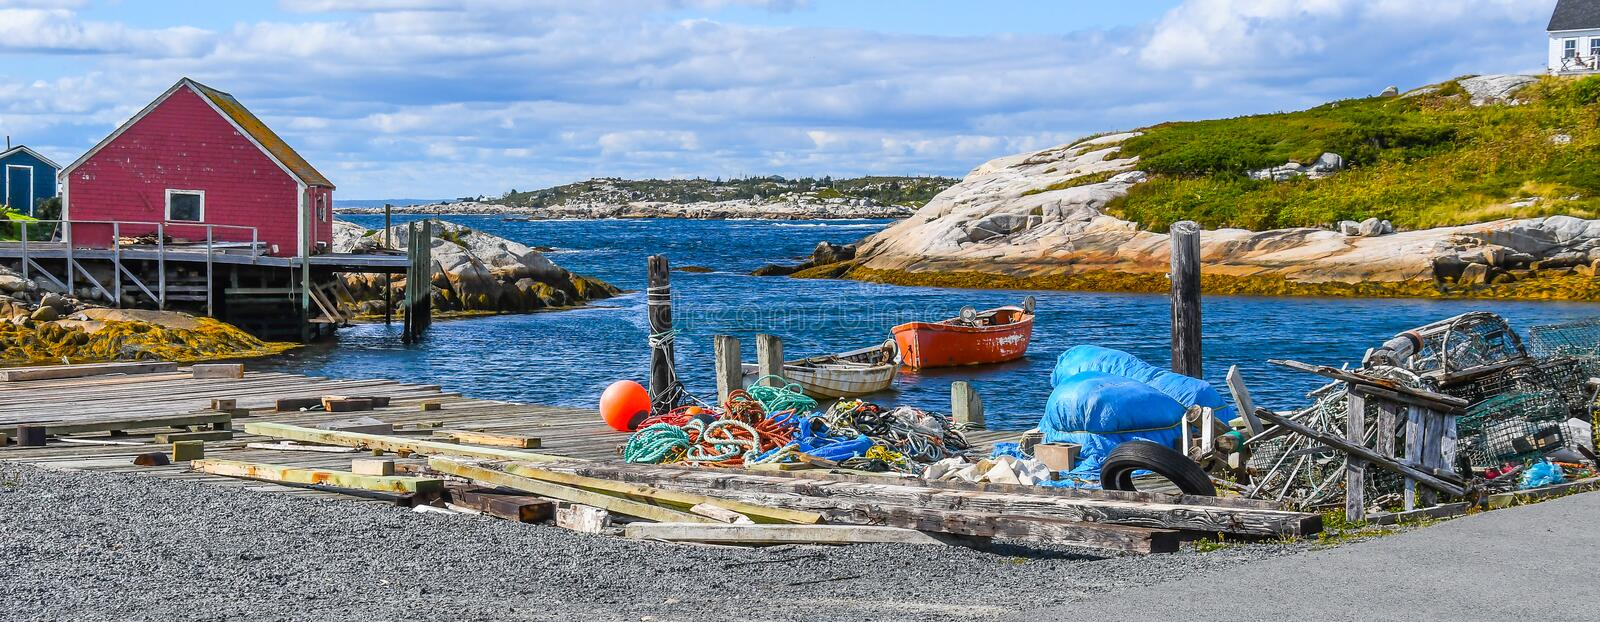 Wide Angle Landscape of Lobster Fishermen`s Colorful Debris on the Pier stock images